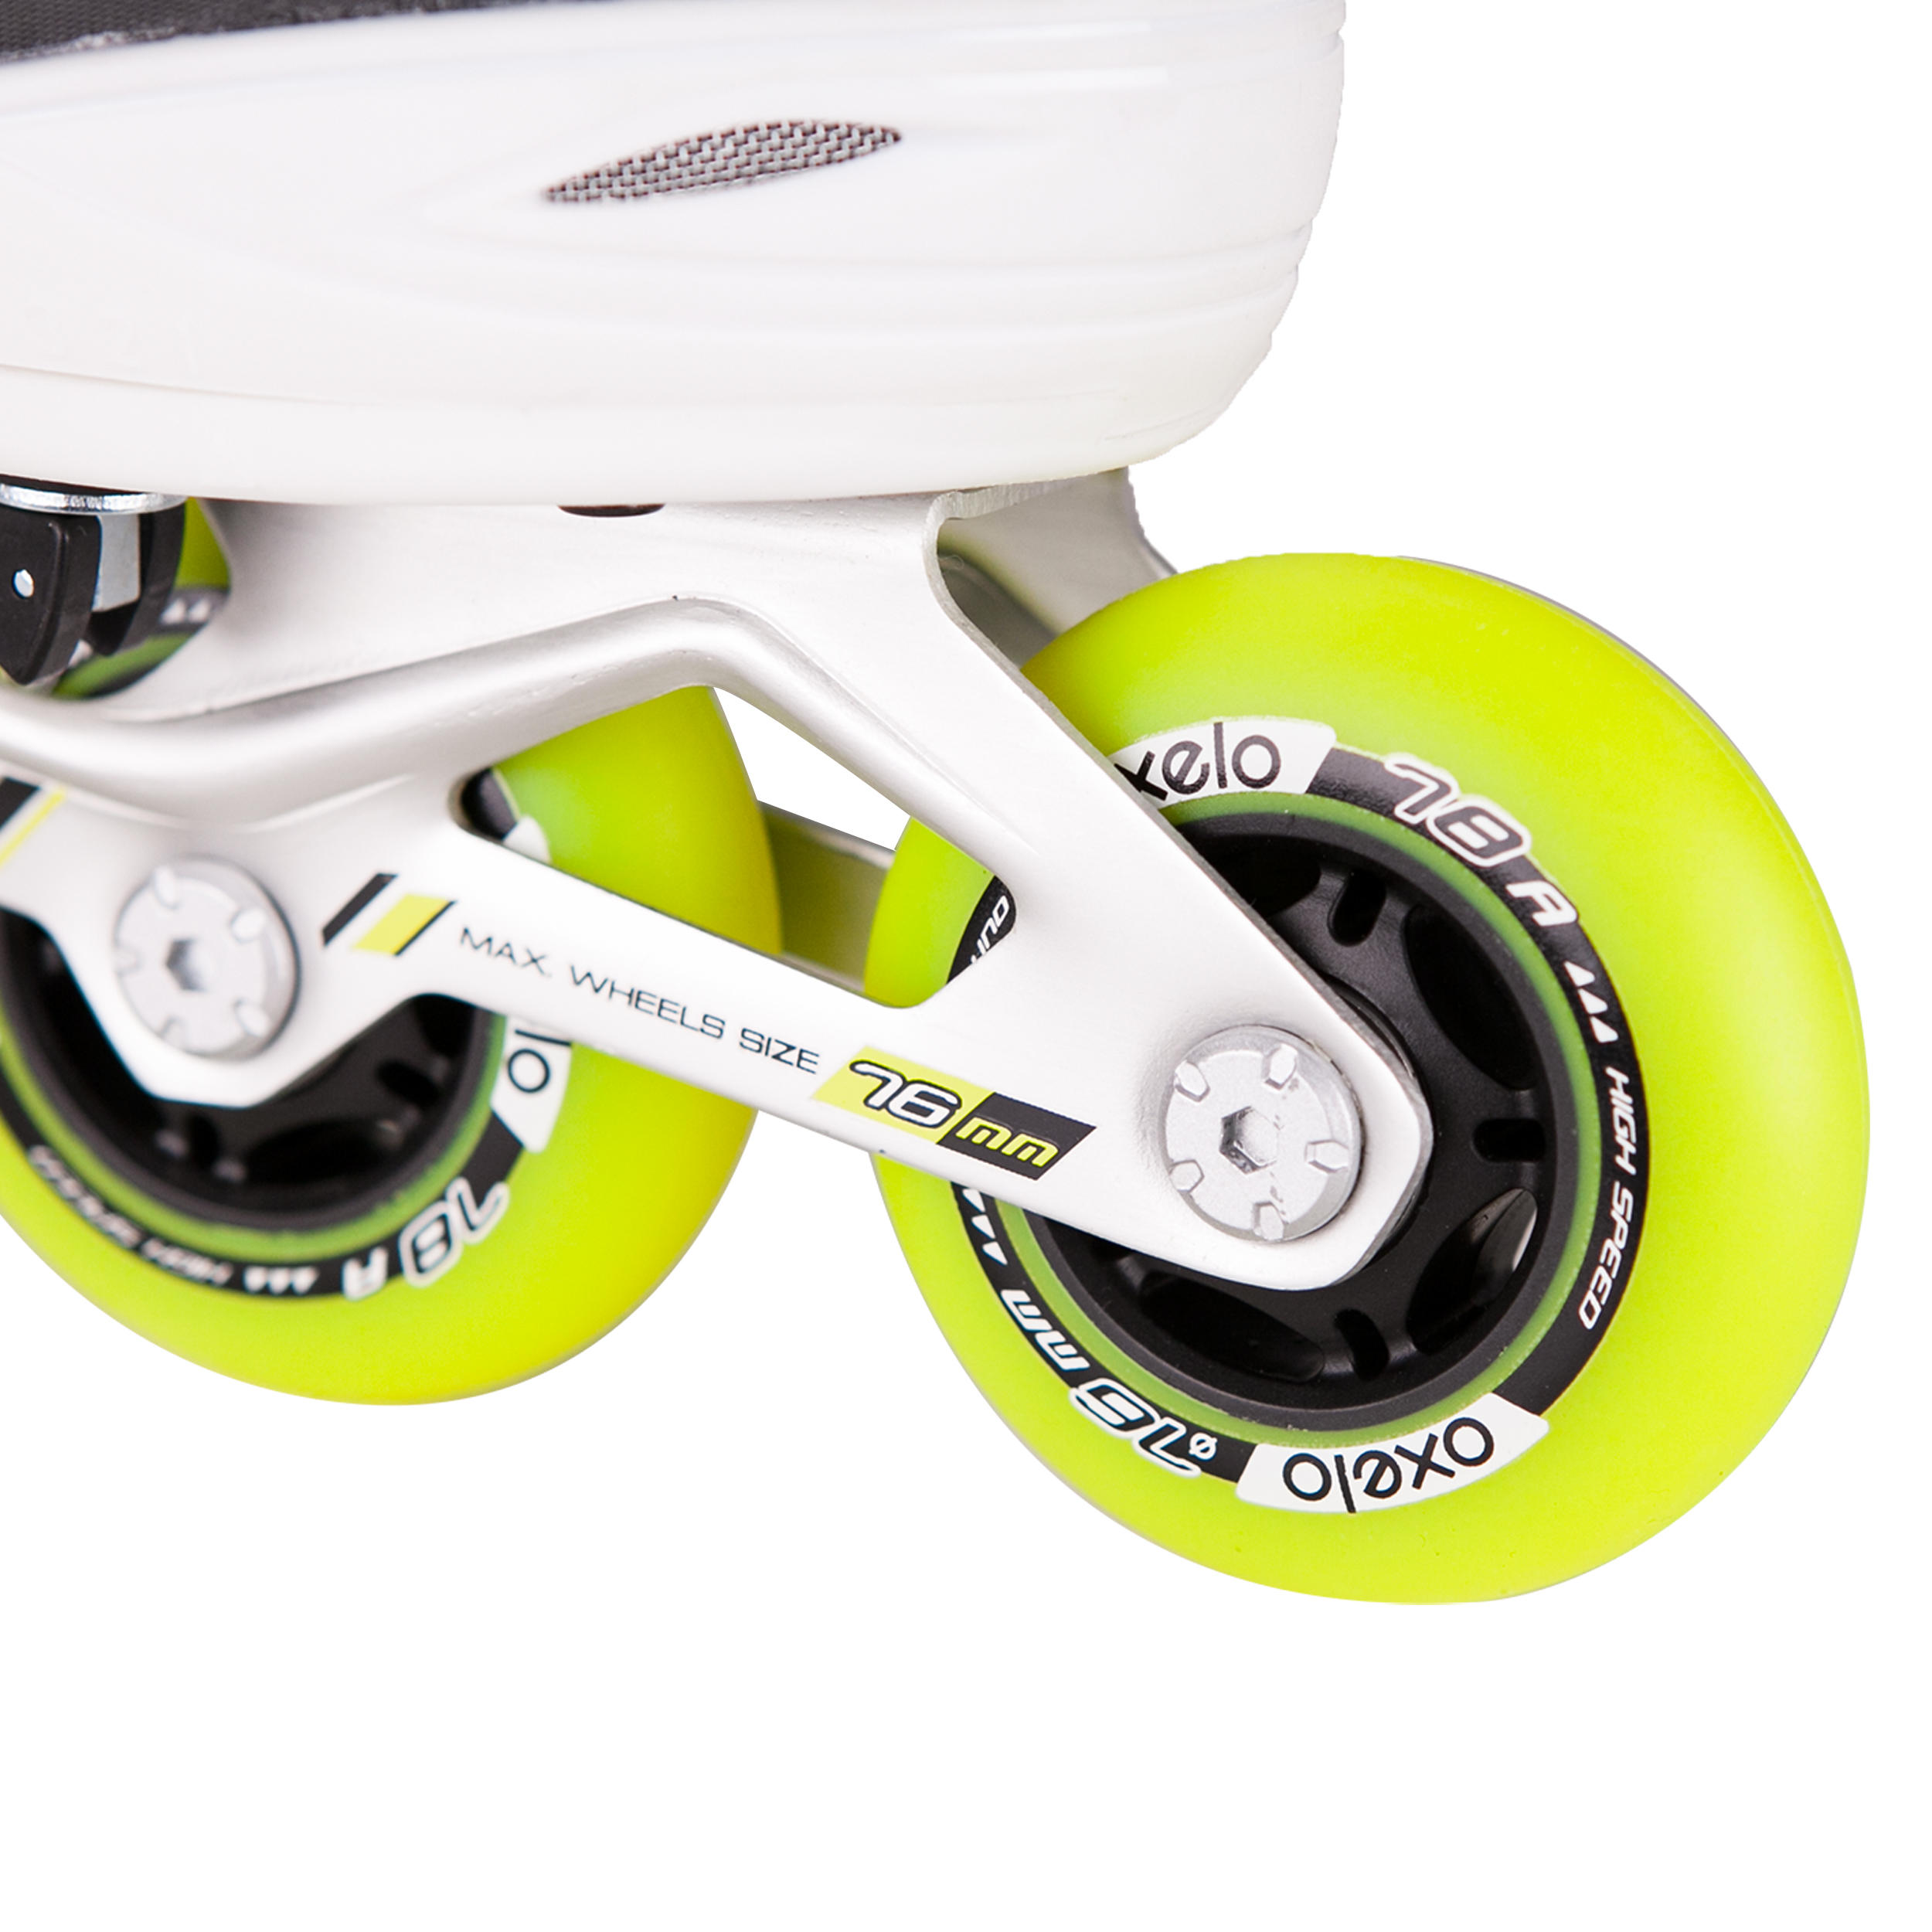 KIDS ROLLER SKATES FIT 5 JR YELLOW